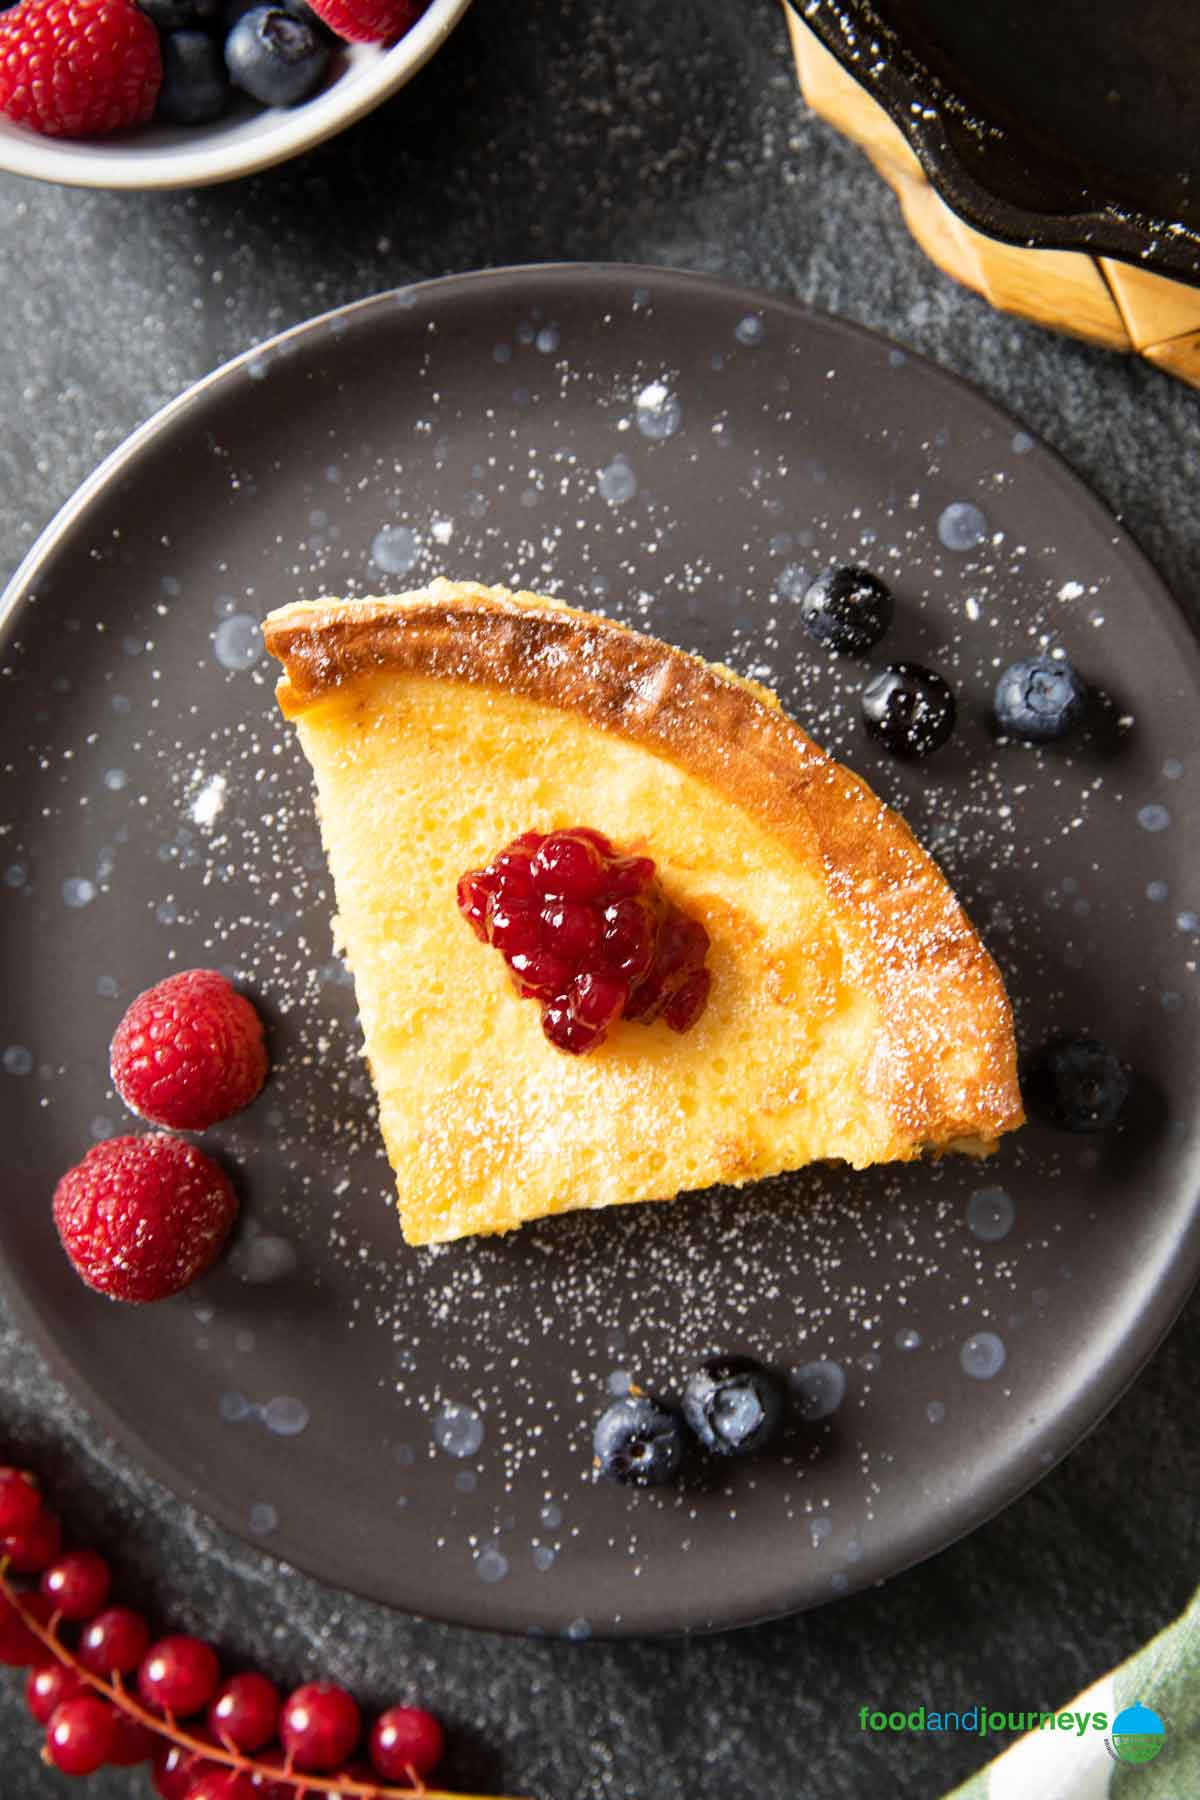 An overhead shot of a serving of Finnish Oven-Baked Pancake, sprinkled with powdered sugar and a dollop of jam in the middle.